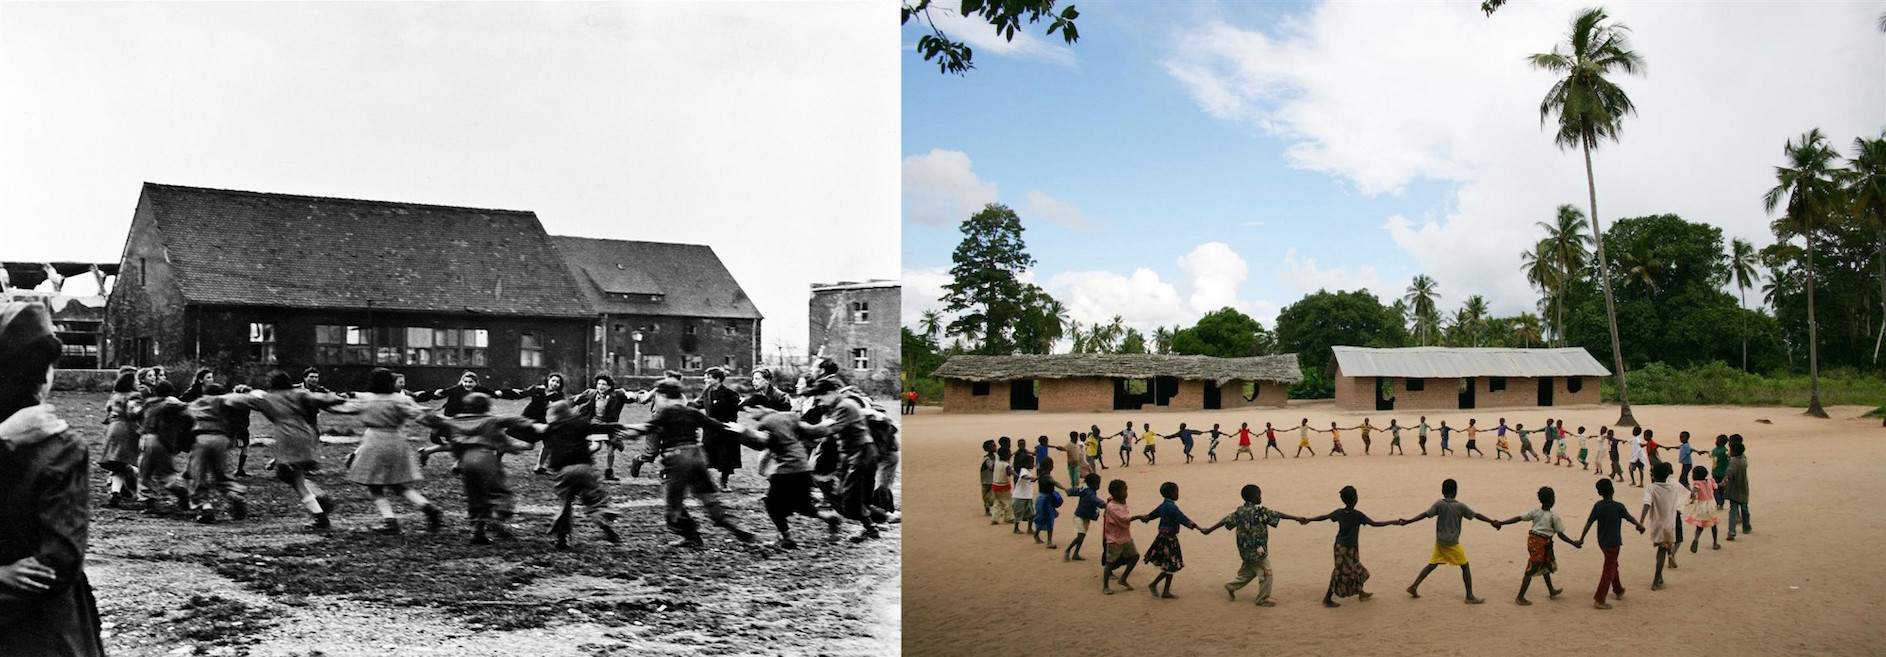 (Left) In 1946 in Germany, children — most of who lost parents in concentration camps — perform a folk dance at an army telecommunications camp. (Right) In 2006, children play during recess at a school in one of the poorest districts in Zambezia Province